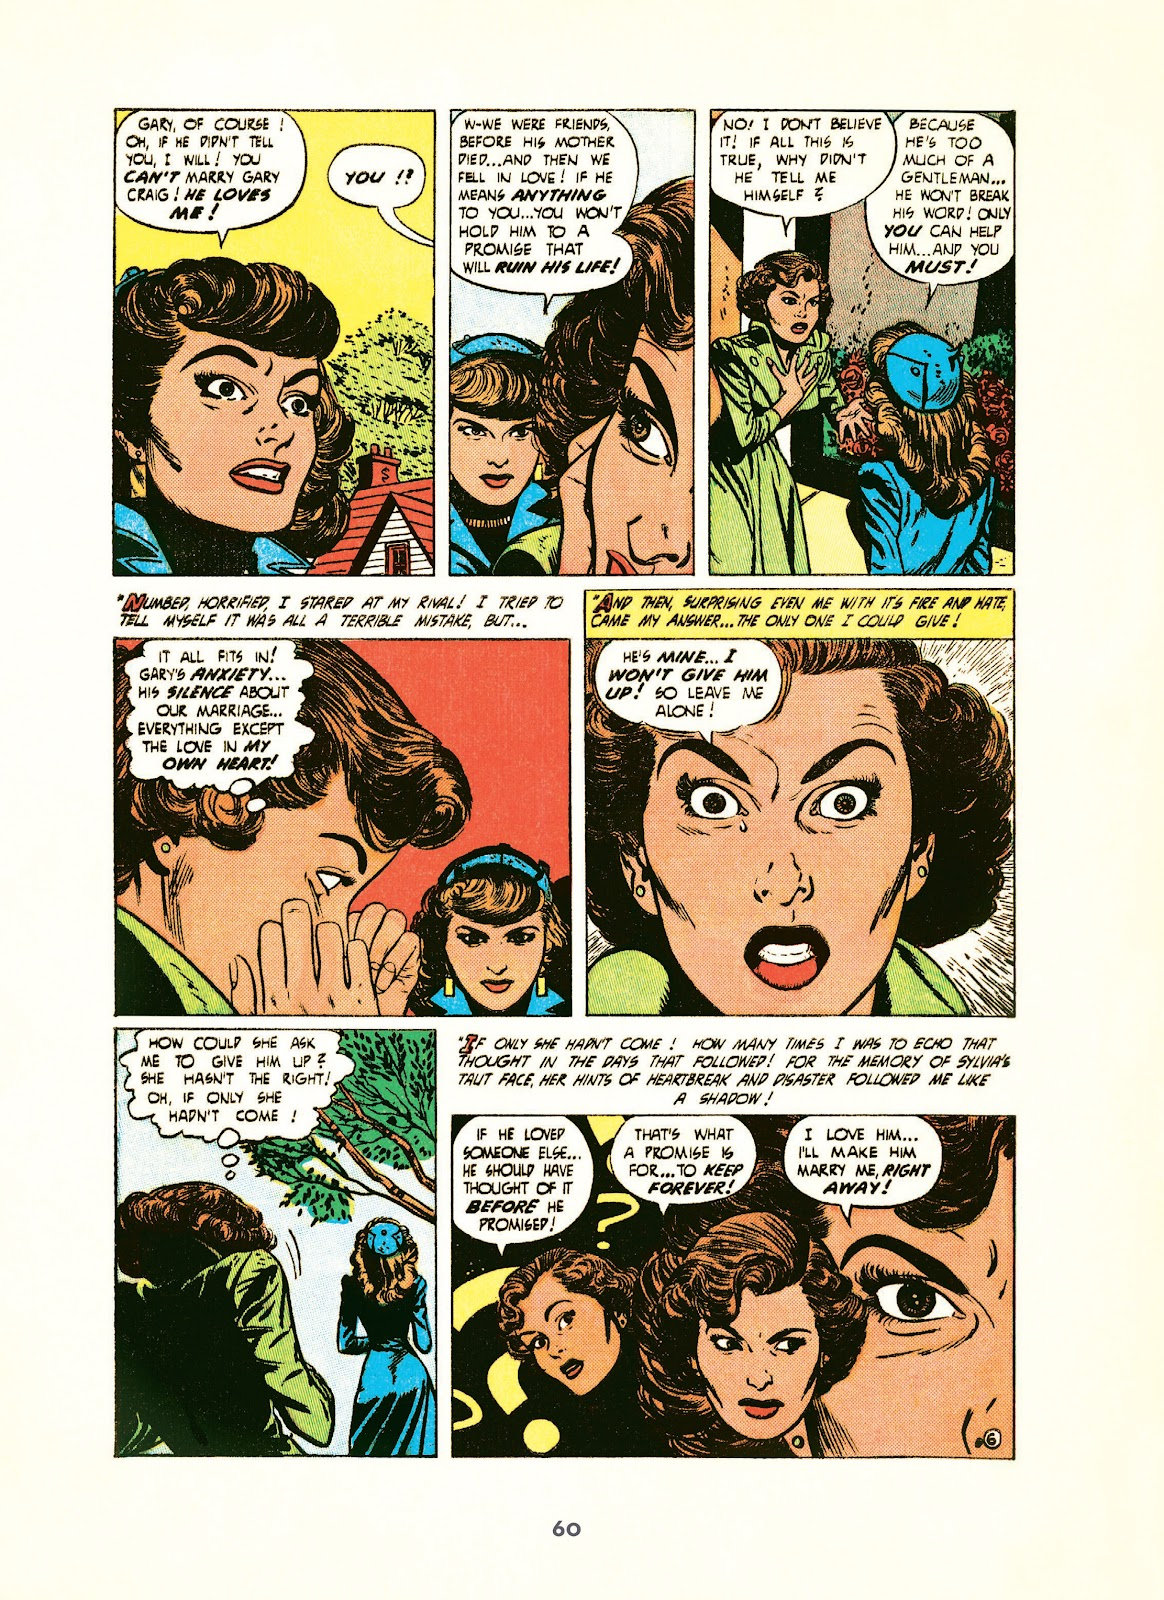 Read online Setting the Standard: Comics by Alex Toth 1952-1954 comic -  Issue # TPB (Part 1) - 59